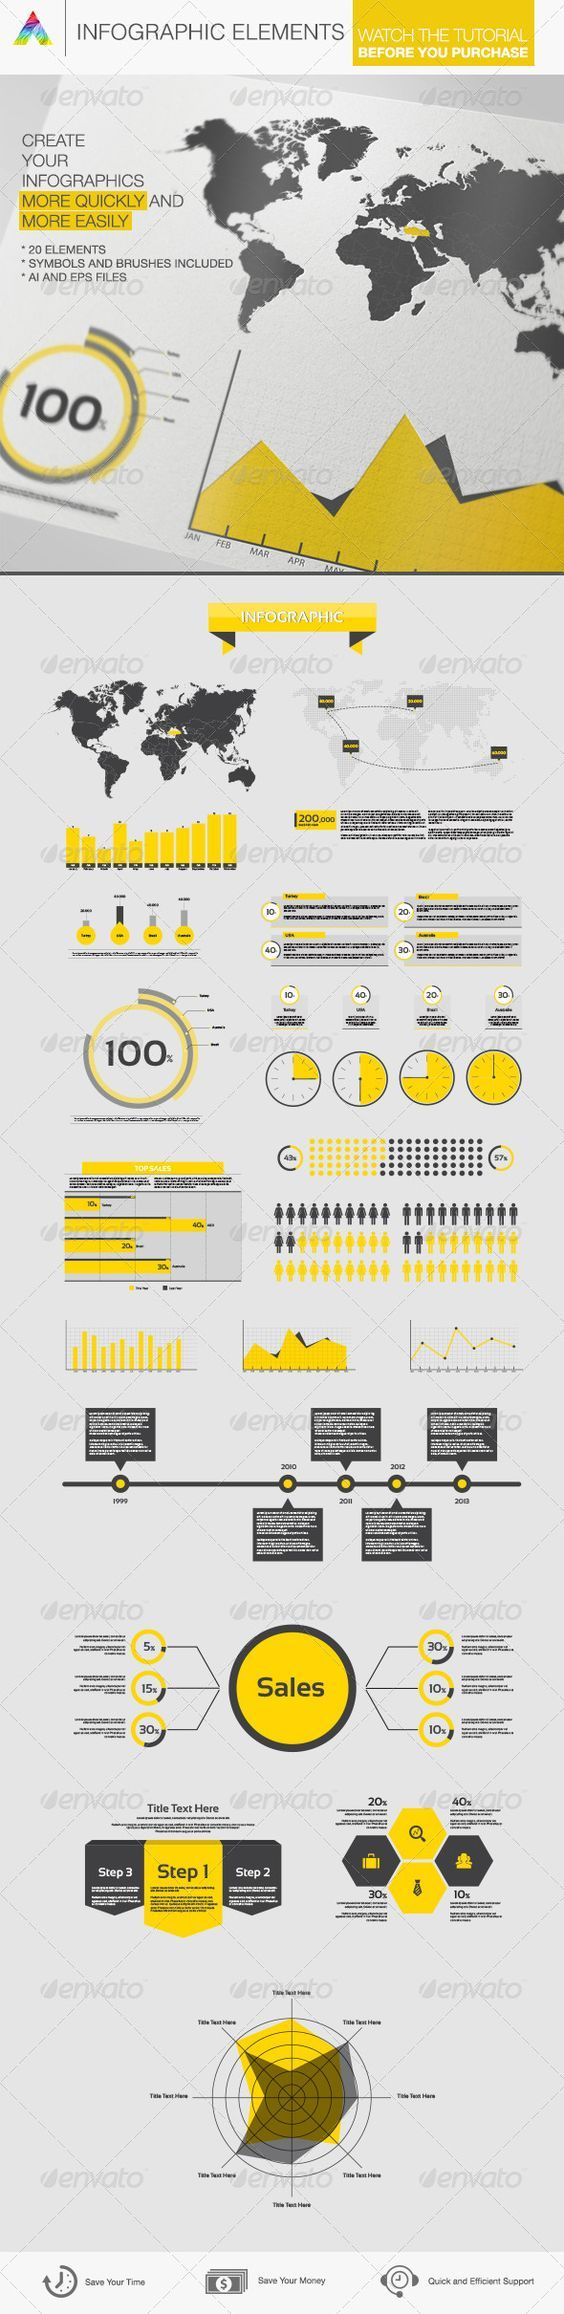 Infographic Elements Features 2 Illustrator CS files (2 .Ai CC/CS, 1 .EPS) 100% Vector Shapes 100% Editable: colors, texts, shapes etc. Brushes and symbols are included. Fonts Sansation. http://startupstacks.com/infographics/infographic-elements-14.html - free download: